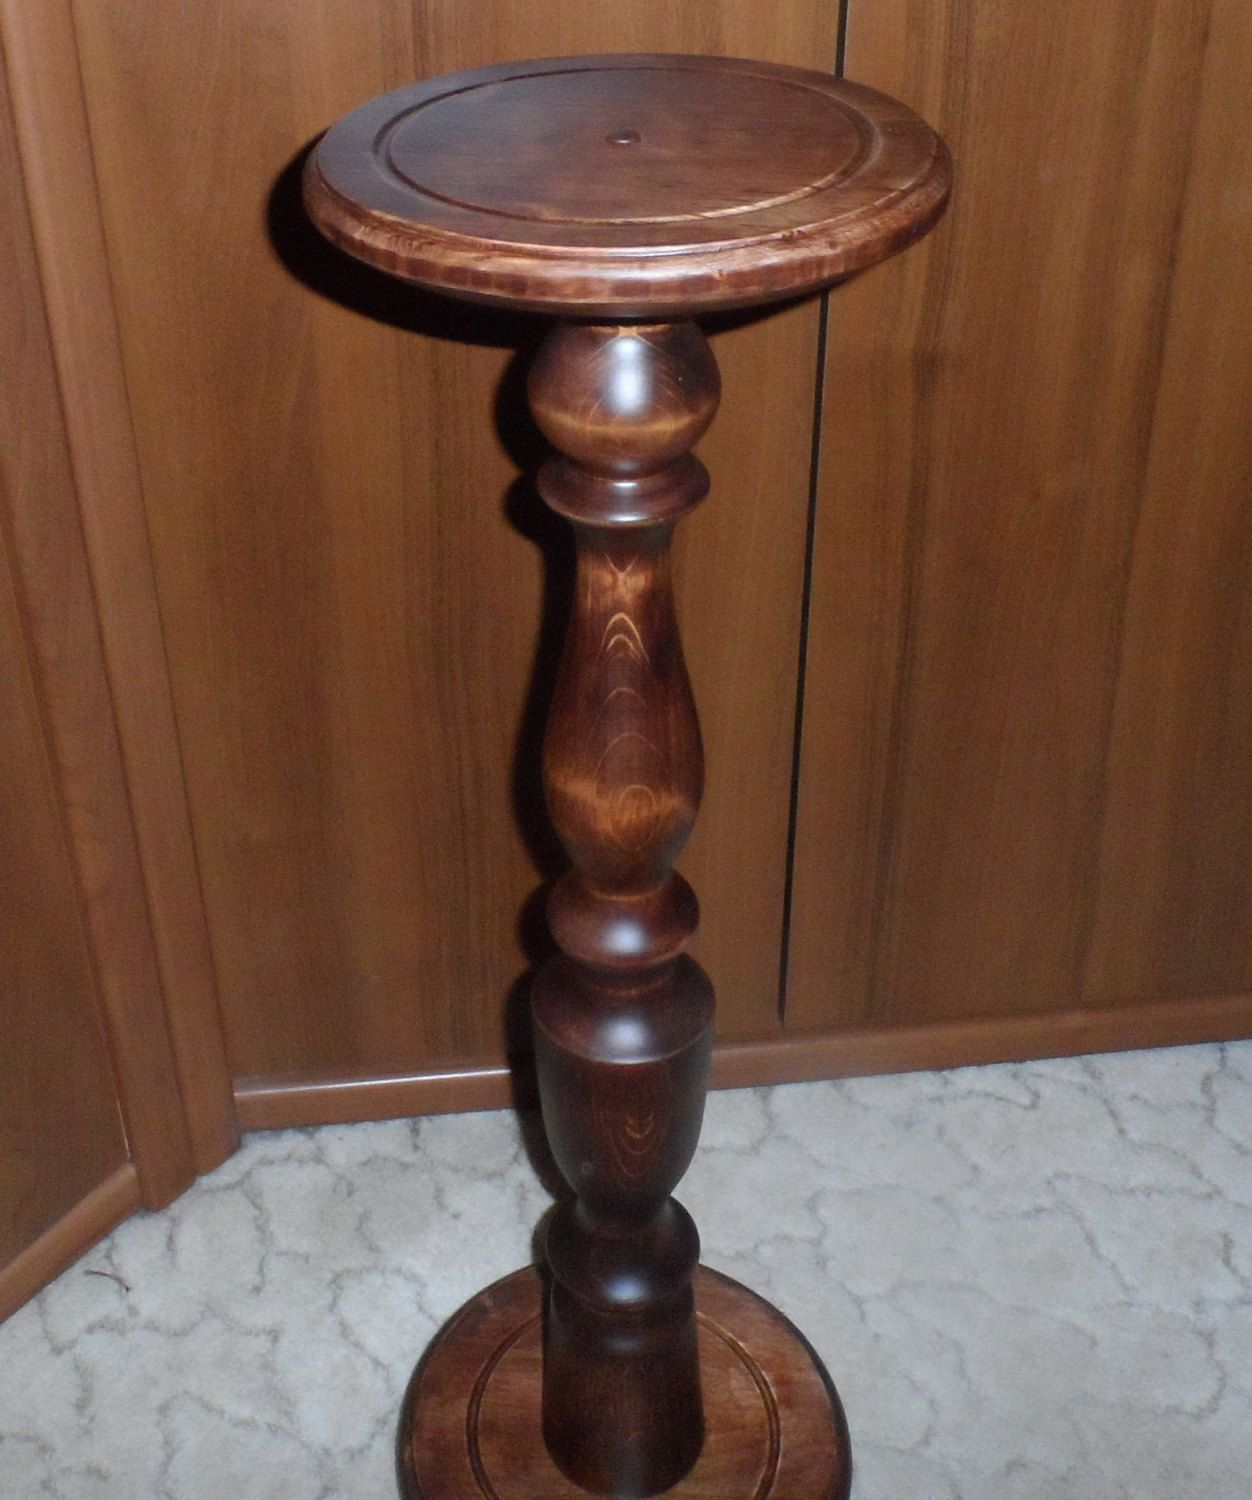 Fern stand / Plant Stand / Wood Pedestal Table / Wooden plant holder